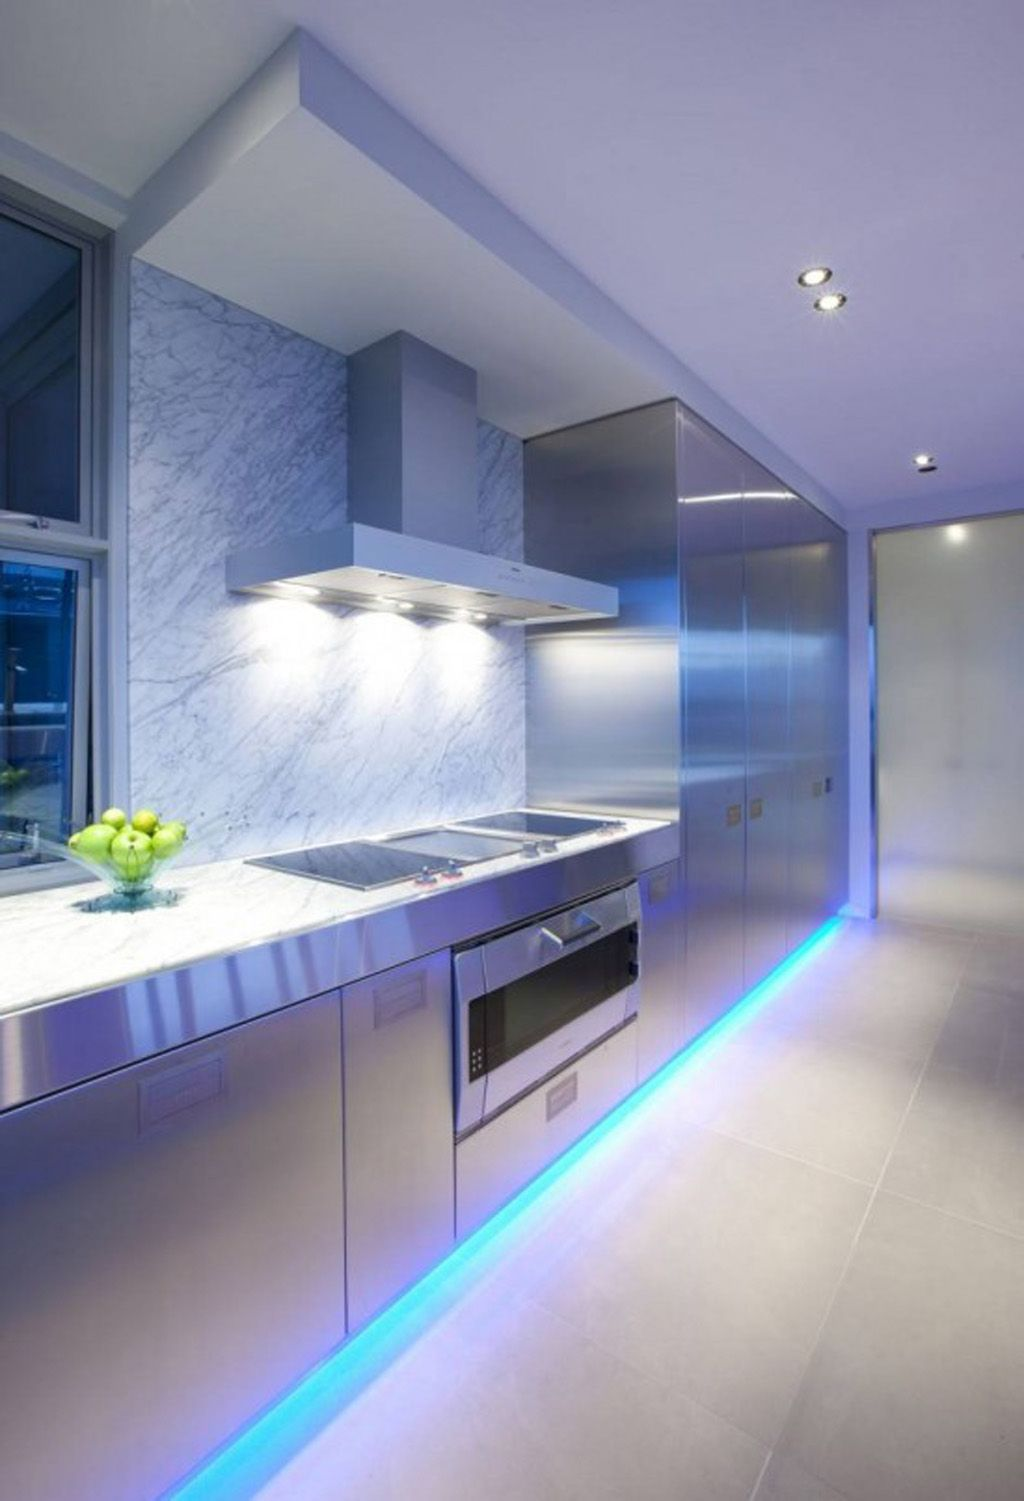 Kitchen Design Expo 21 stunning kitchen ceiling design ideas | led kitchen lighting